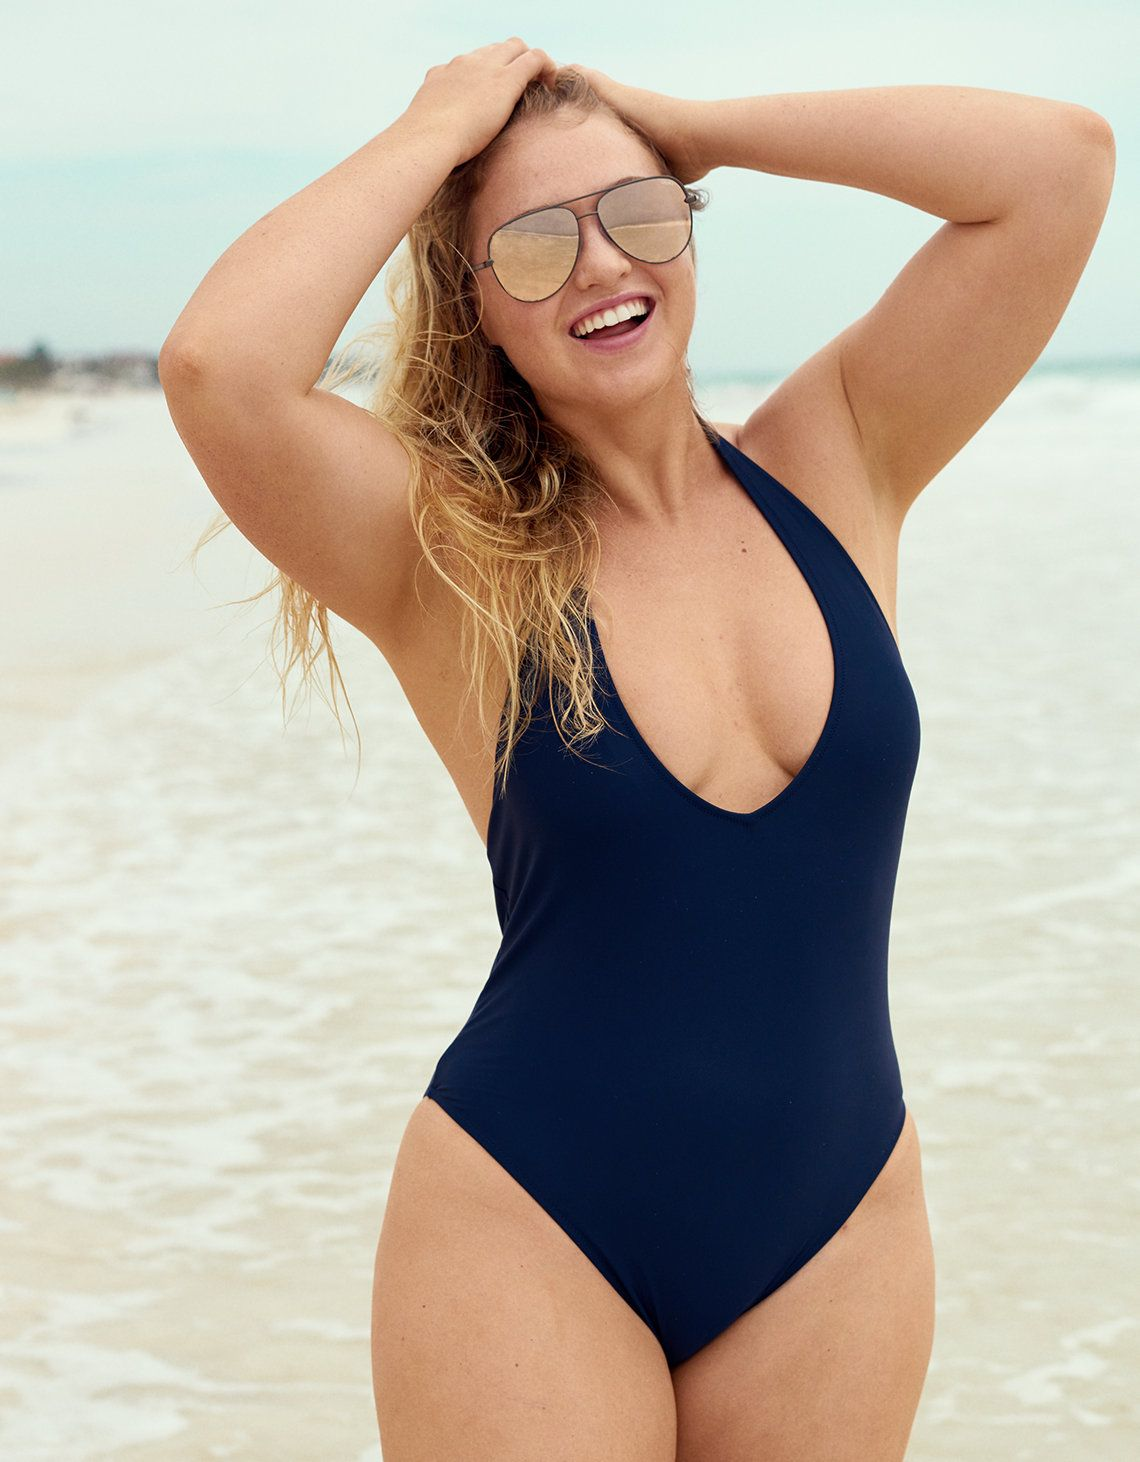 dbad8e0345ce8 Image for the product Plunging One Piece Swimsuit, Iskra Lawrence, Mens  Outfitters, Plus